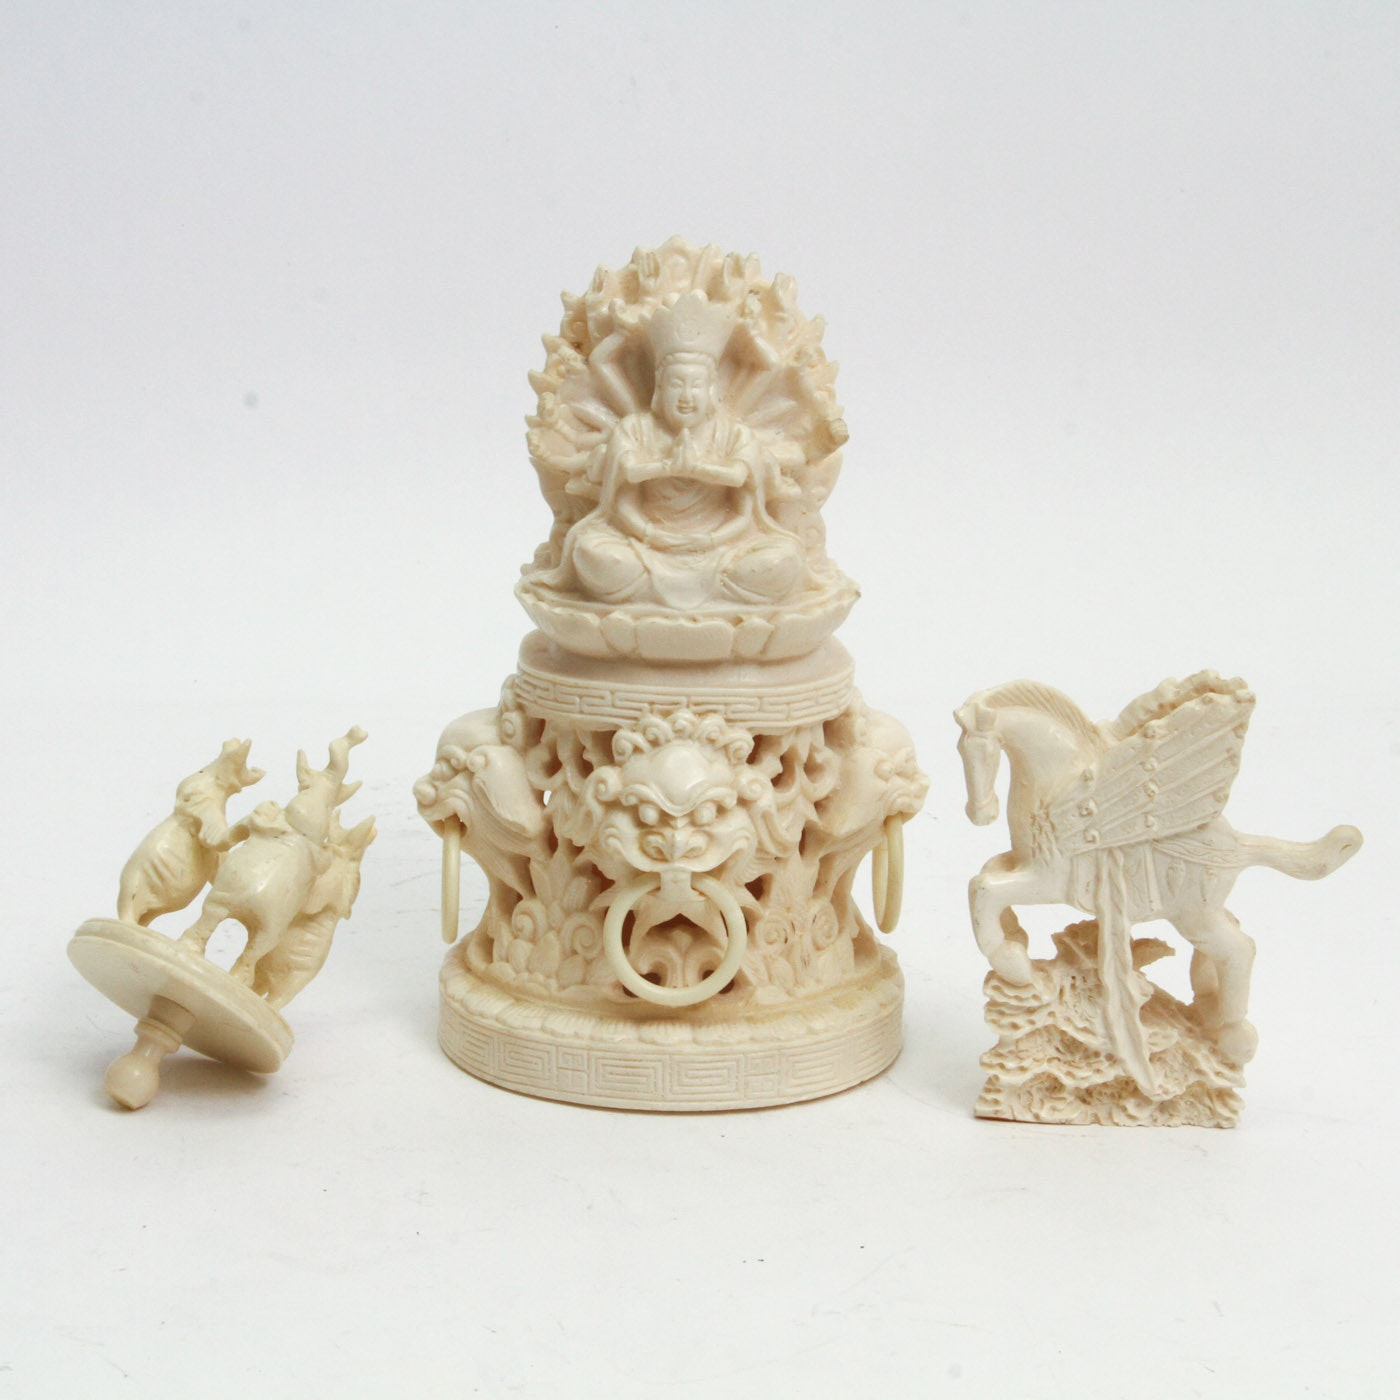 Collection of Chinese Resin Relief Carvings